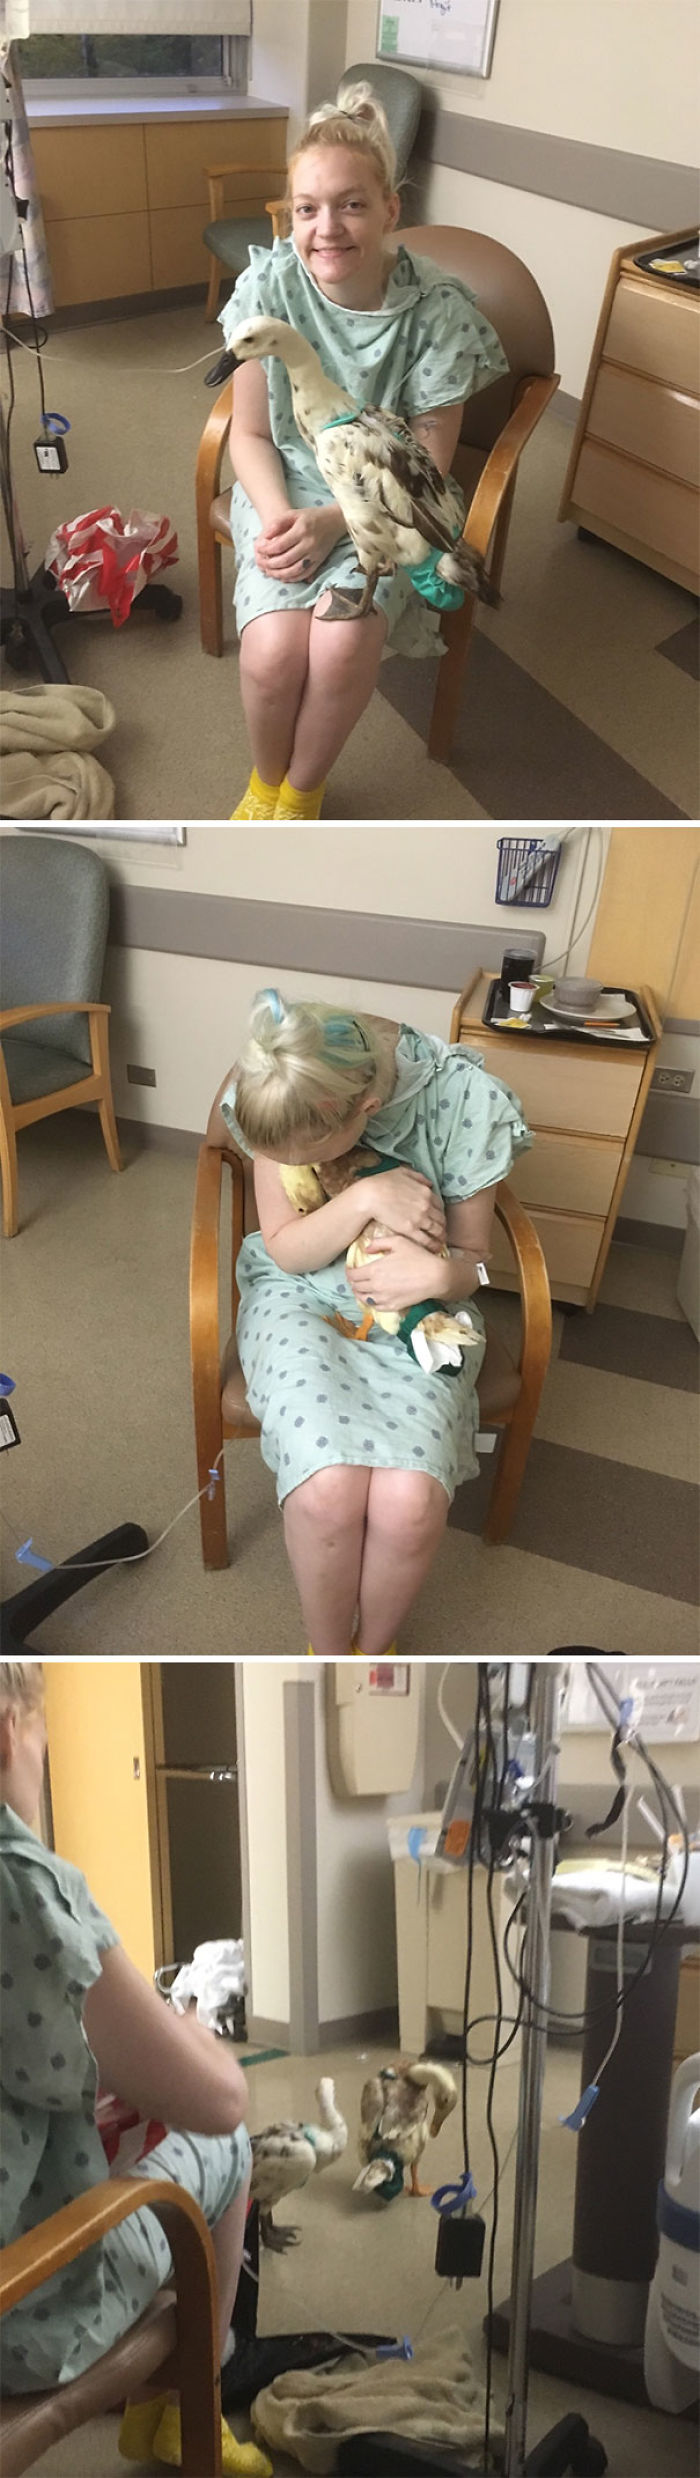 I Didn't Want To Go To The Hospital When I Had Life-Threatening Illness, Because My Elderly Pet Ducks Required Daily Medications At The Time. I'm The Only Person They'll Allow. The Nurses Let My Husband Sneak Them In At Night